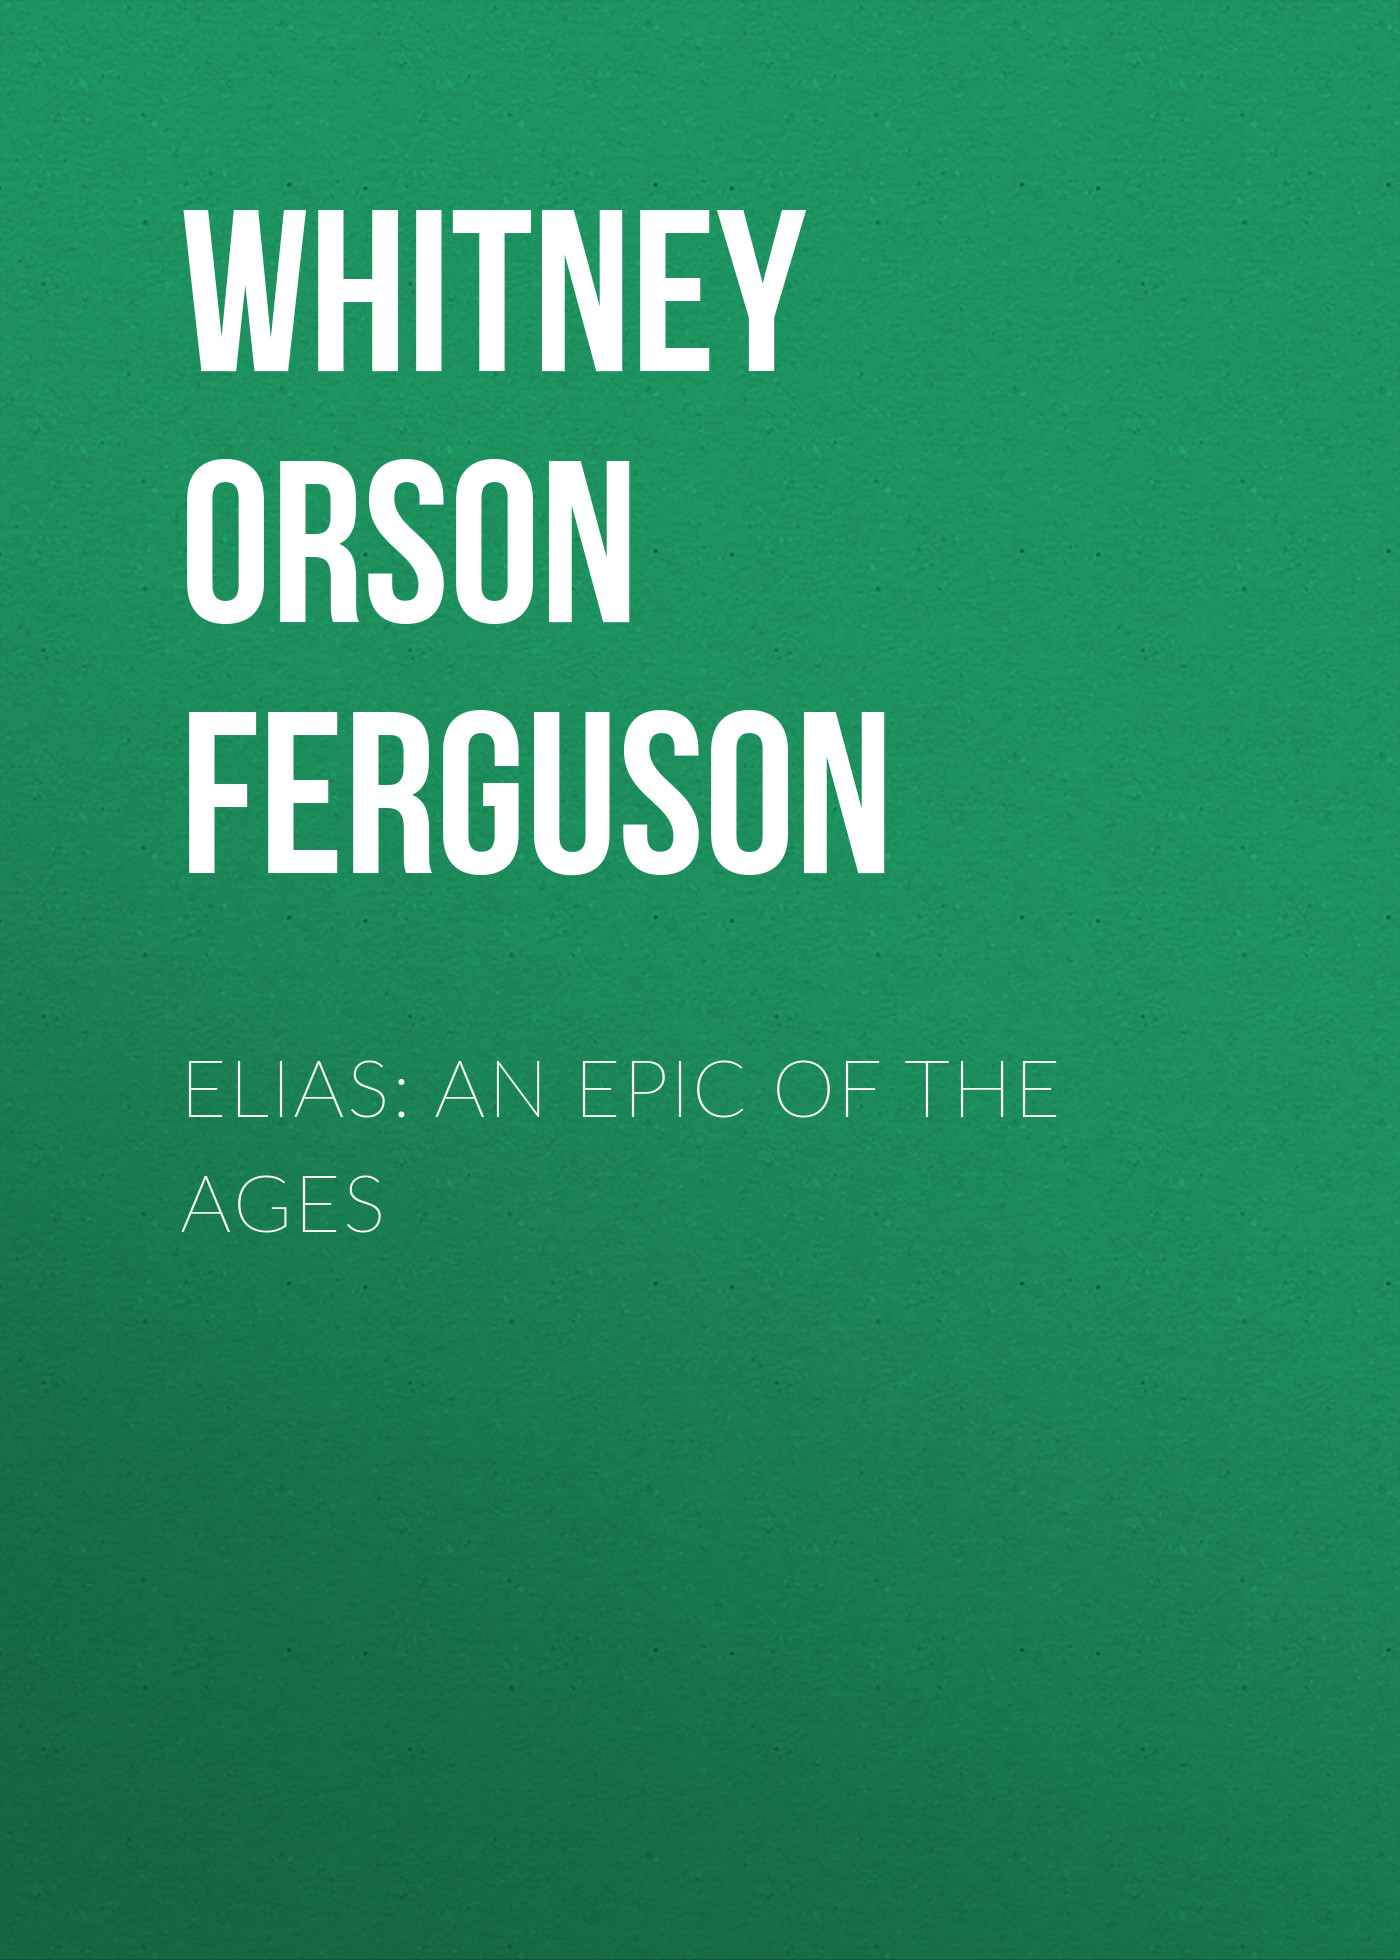 Whitney Orson Ferguson Elias: An Epic of the Ages ремень ecco elias